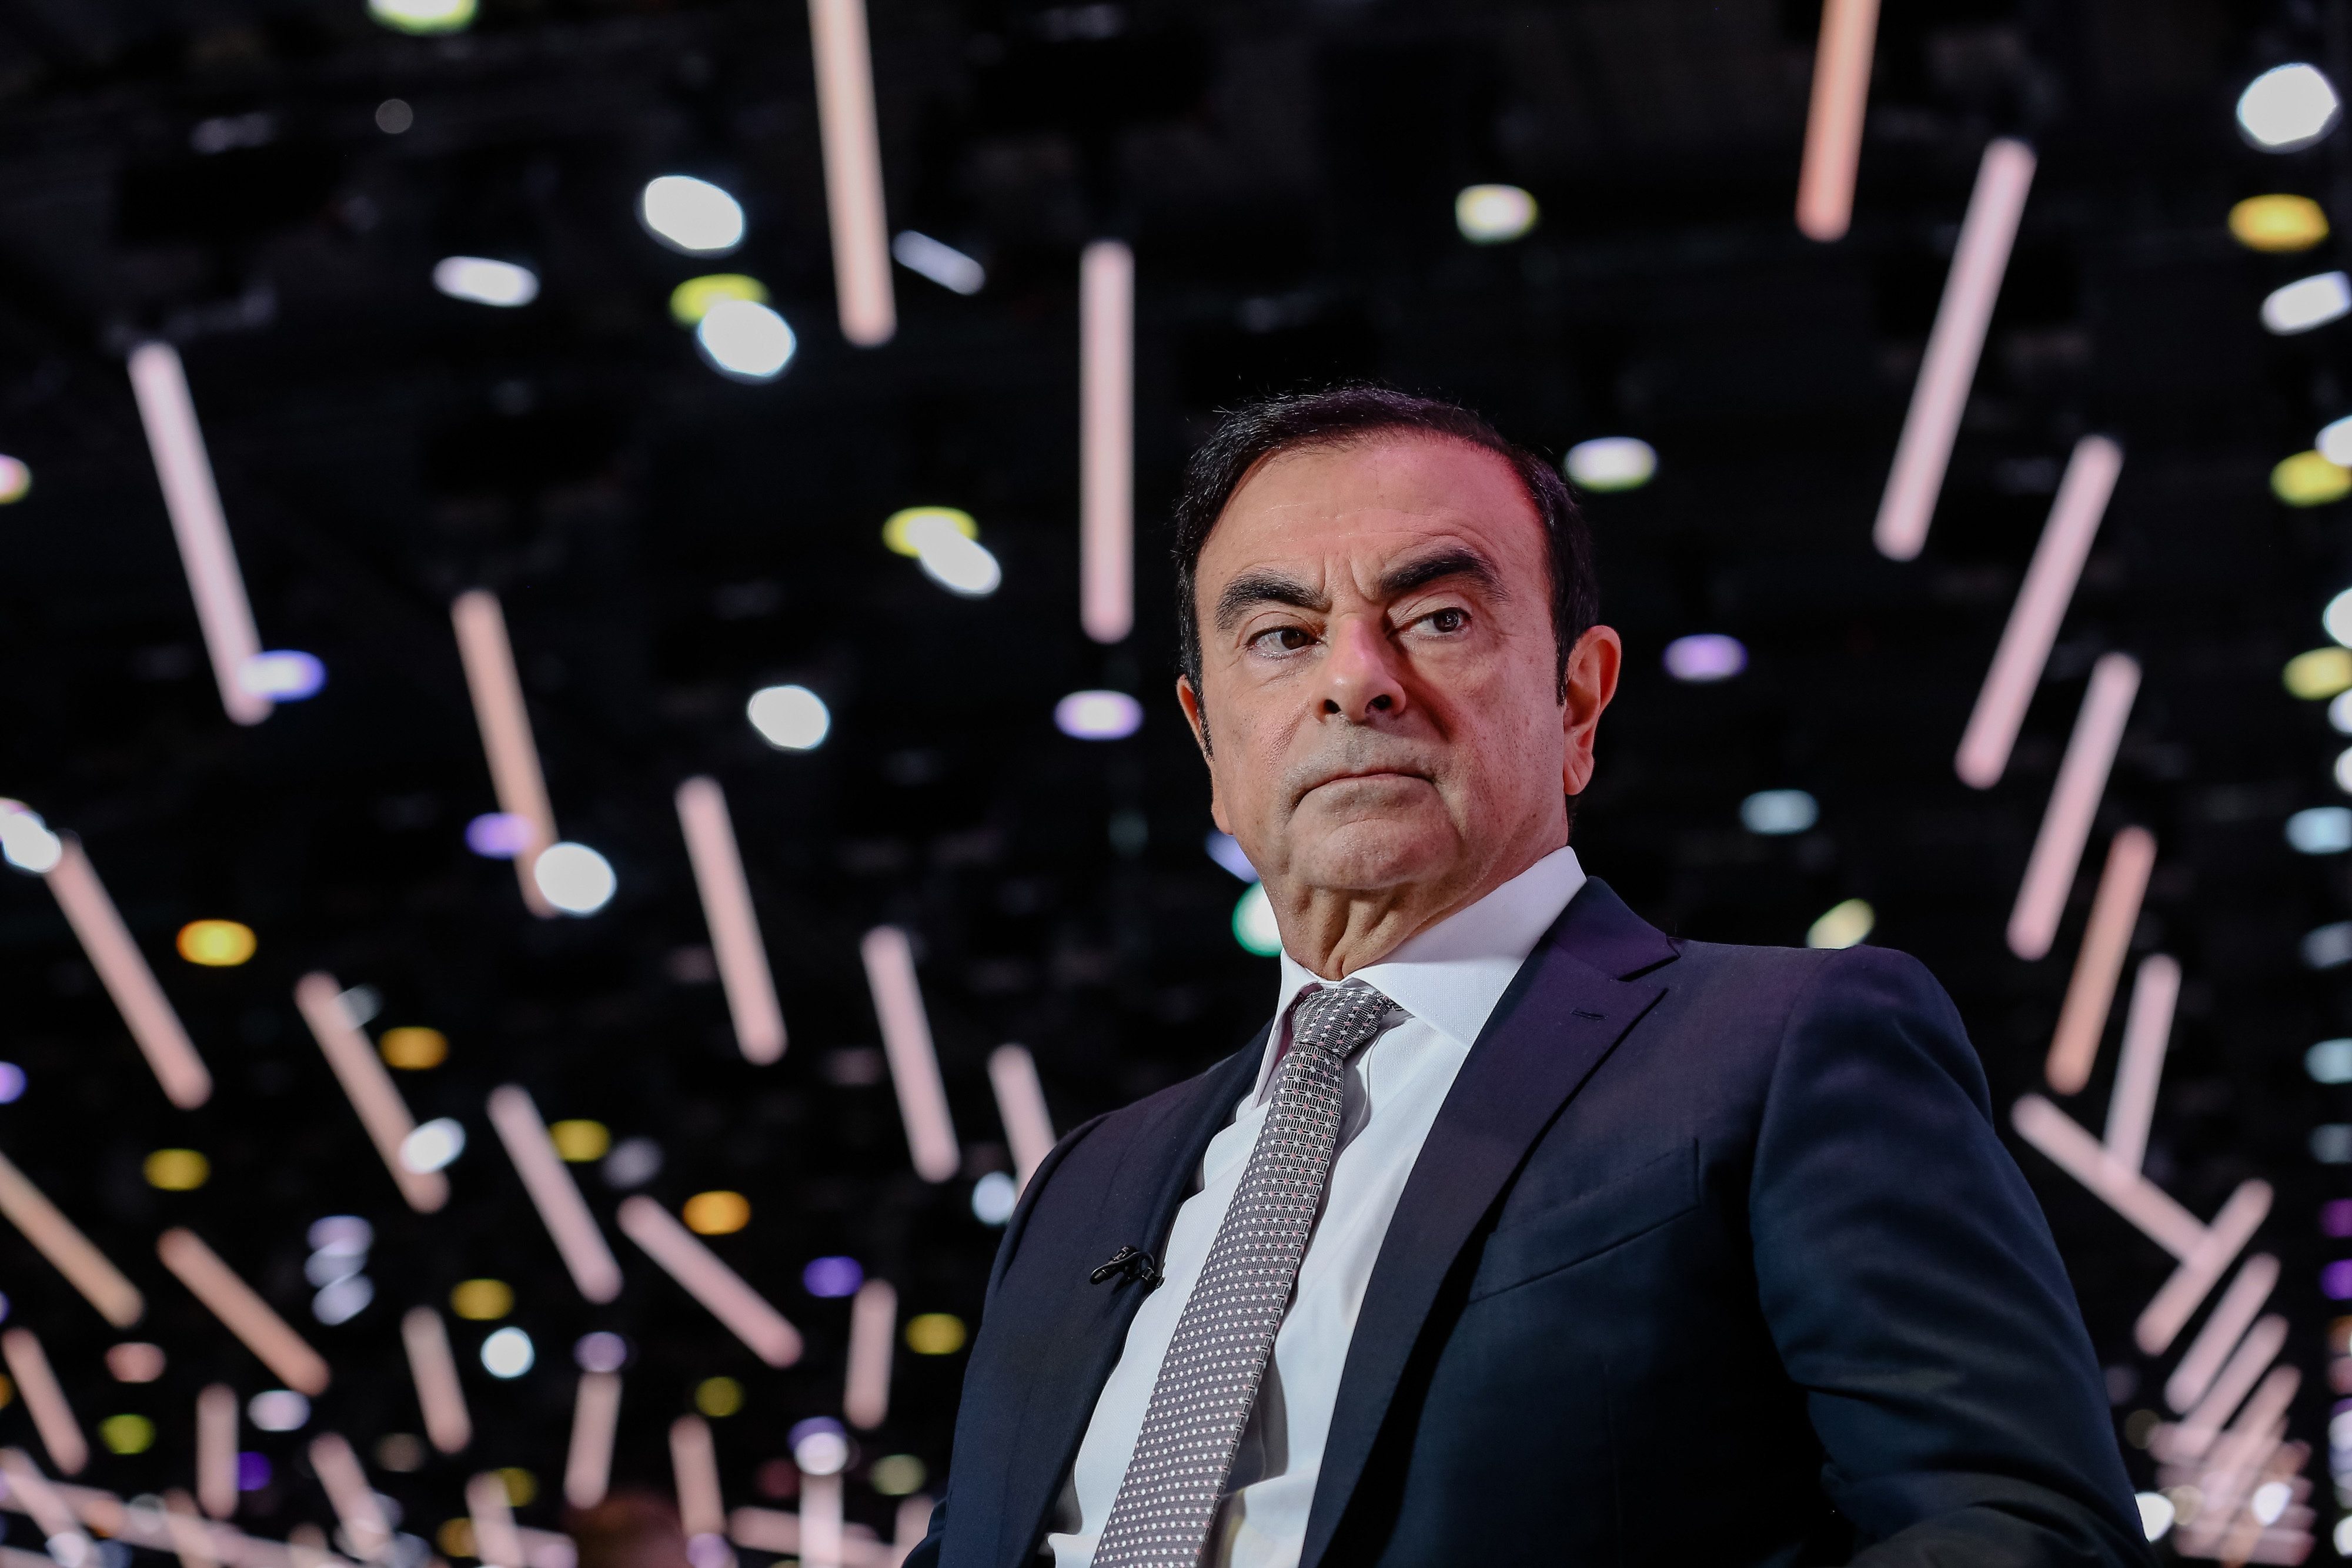 FILE: Carlos Ghosn, chairman of the alliance between Renault SA, Nissan Motor Co. and Mitsubishi Motors Corp., pauses during a Bloomberg Television interview at the Paris Motor Show in Paris, France, on Tuesday, Oct. 2, 2018. Ghosn, the chairman of Nissan Motor Co., is set to be arrested in Tokyo over a suspected breach of Japanese financial trading law, the Asahi newspaper reported. Photographer: Marlene Awaad/Bloomberg via Getty Images